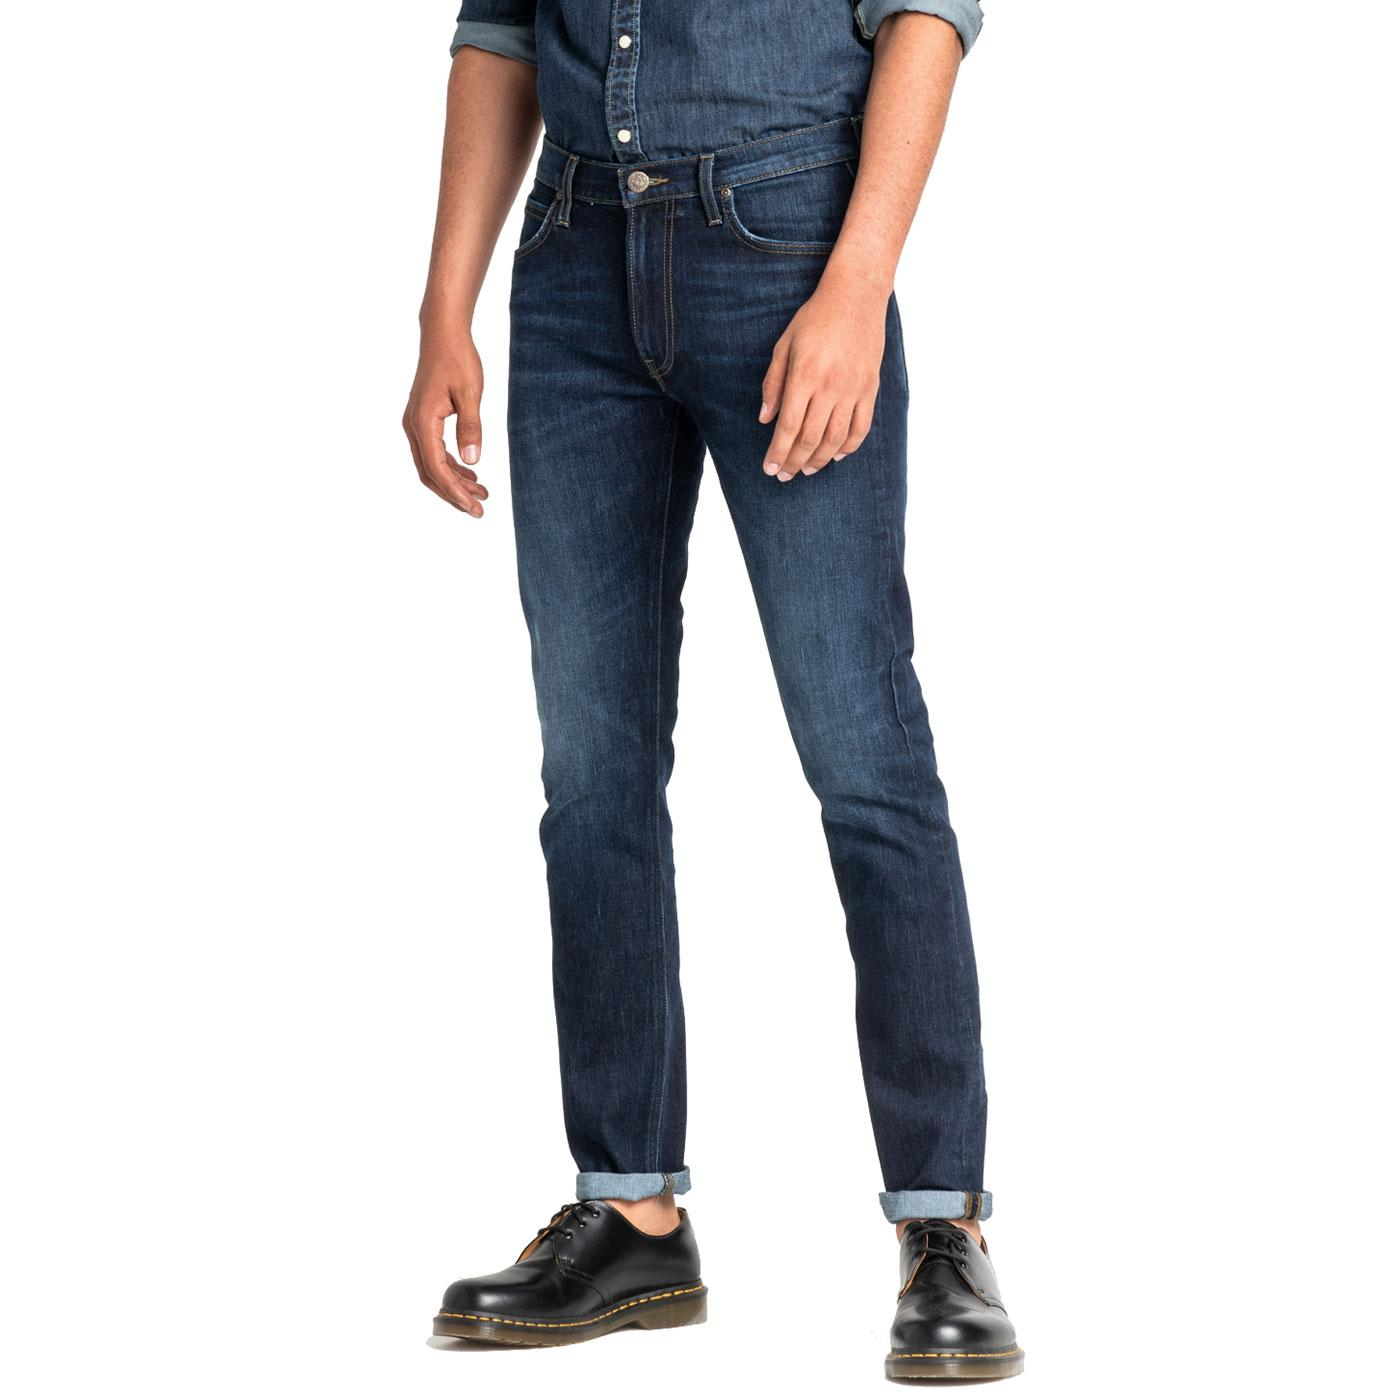 Luke LEE JEANS Mod Slim Tapered Denim Jeans DP